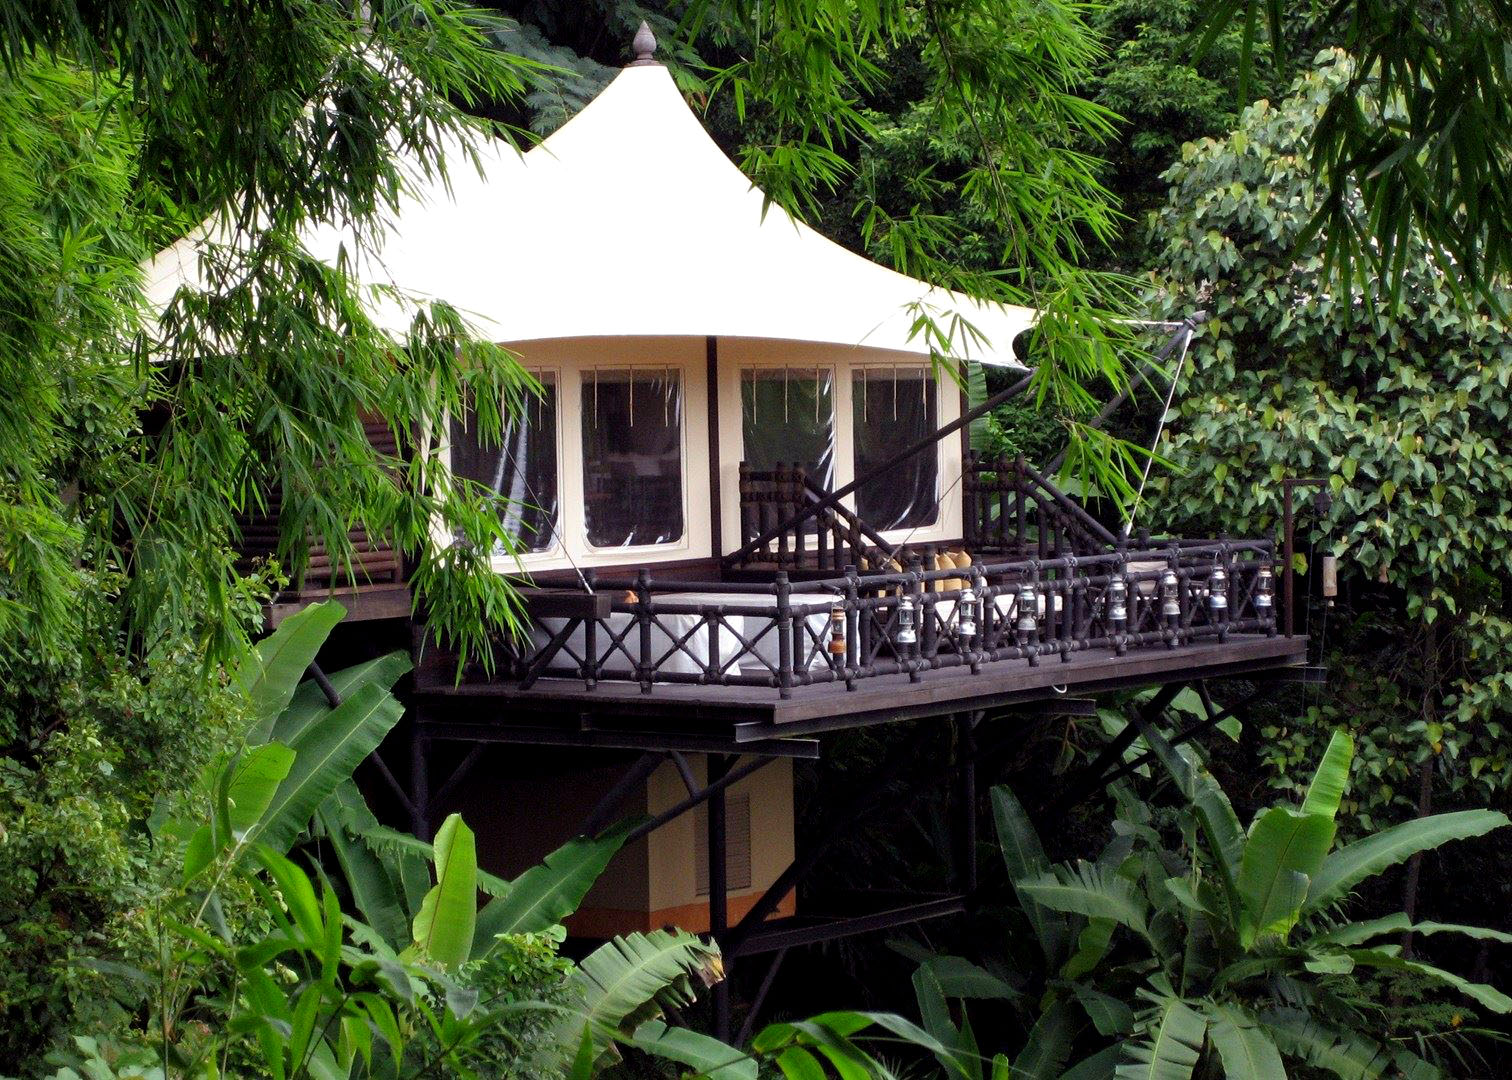 Tent bungalow at Four Season's Tented Camp in the Golden Triangle, Thailand